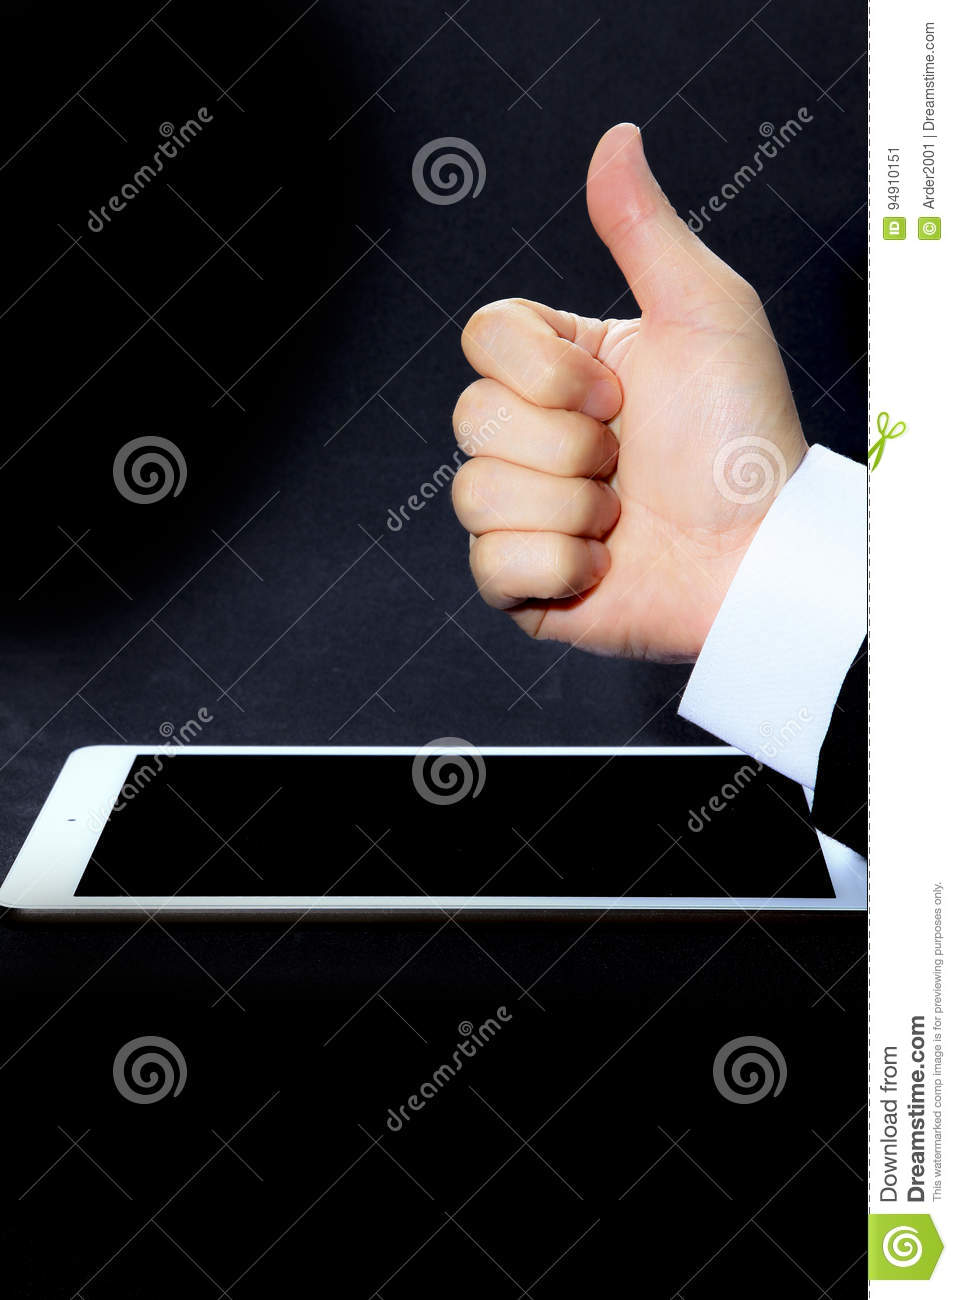 Give A Like And Thumbs Up Stock Image Image Of Gender 94910151